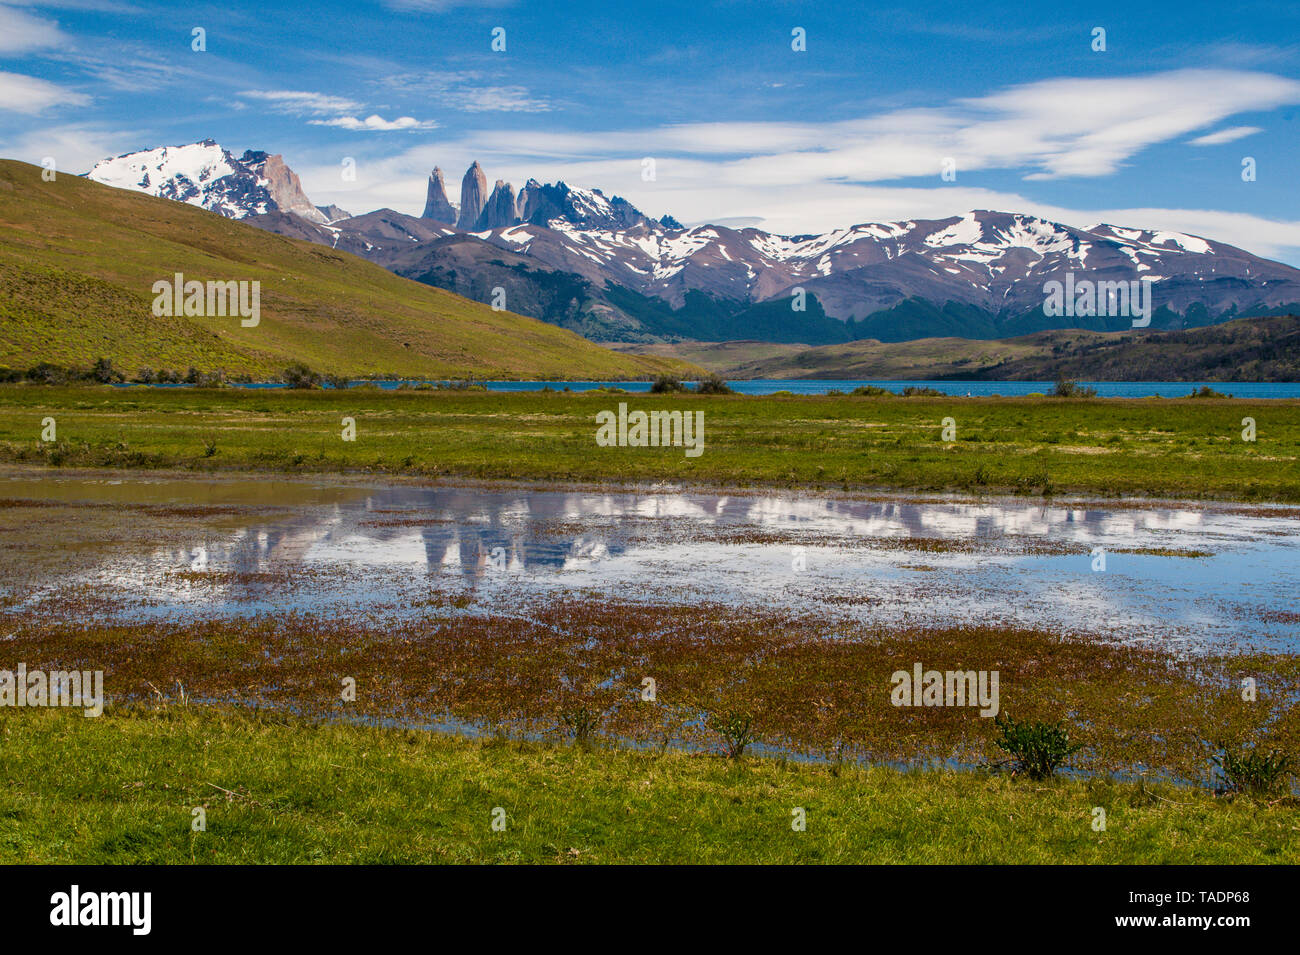 Chile, Patagonia, Torres del Paine National Park, scenic - Stock Image